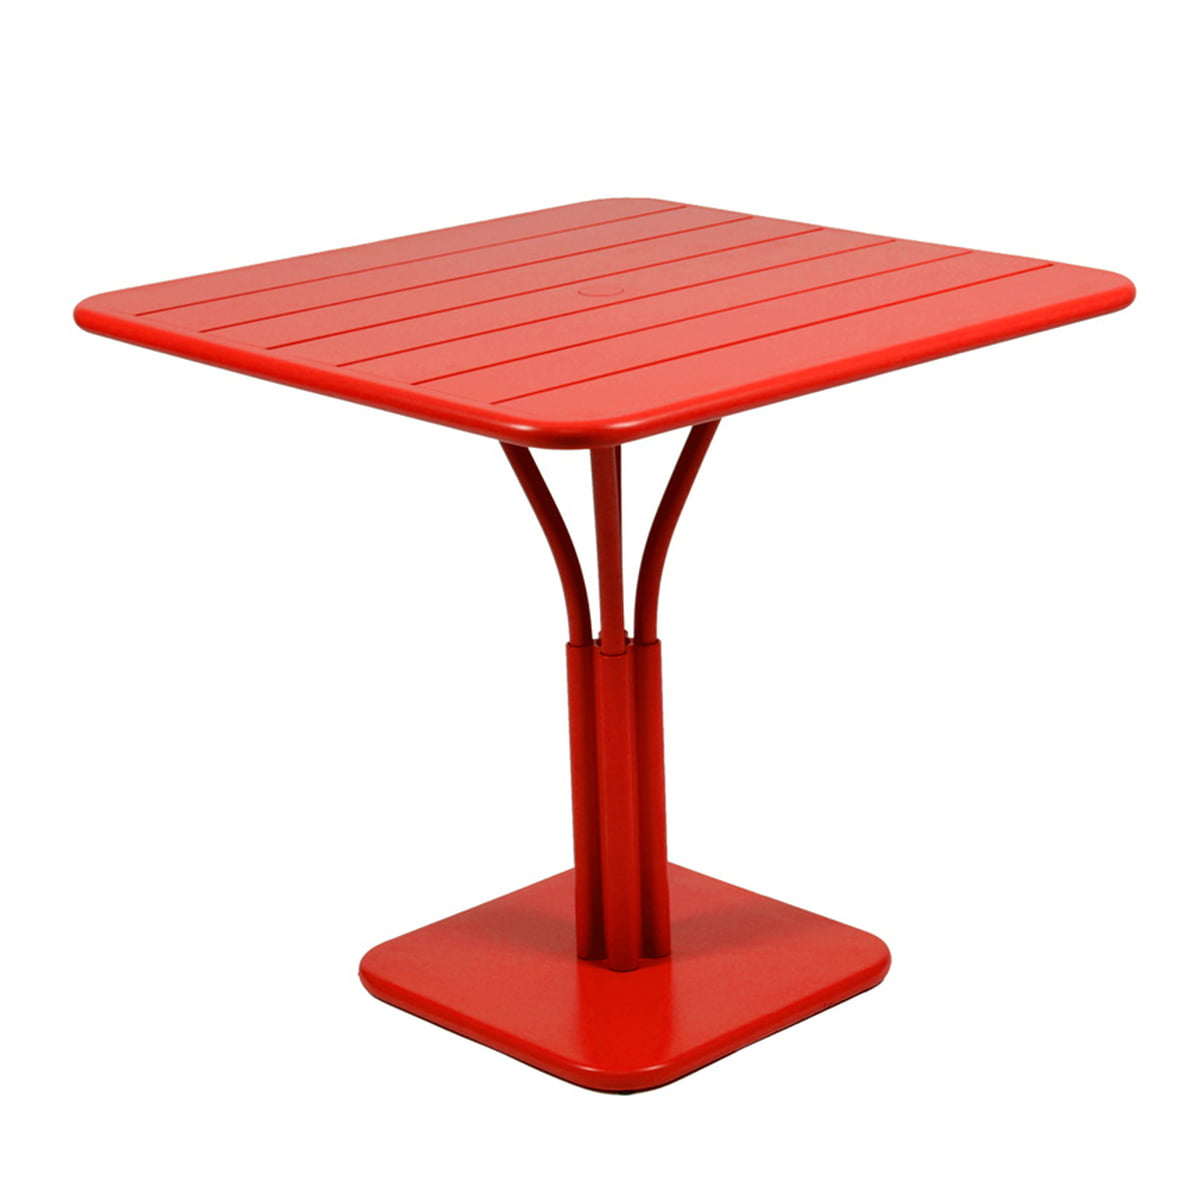 Wonderful Luxembourg Table 80 X 80cm By Fermob In Poppy Red